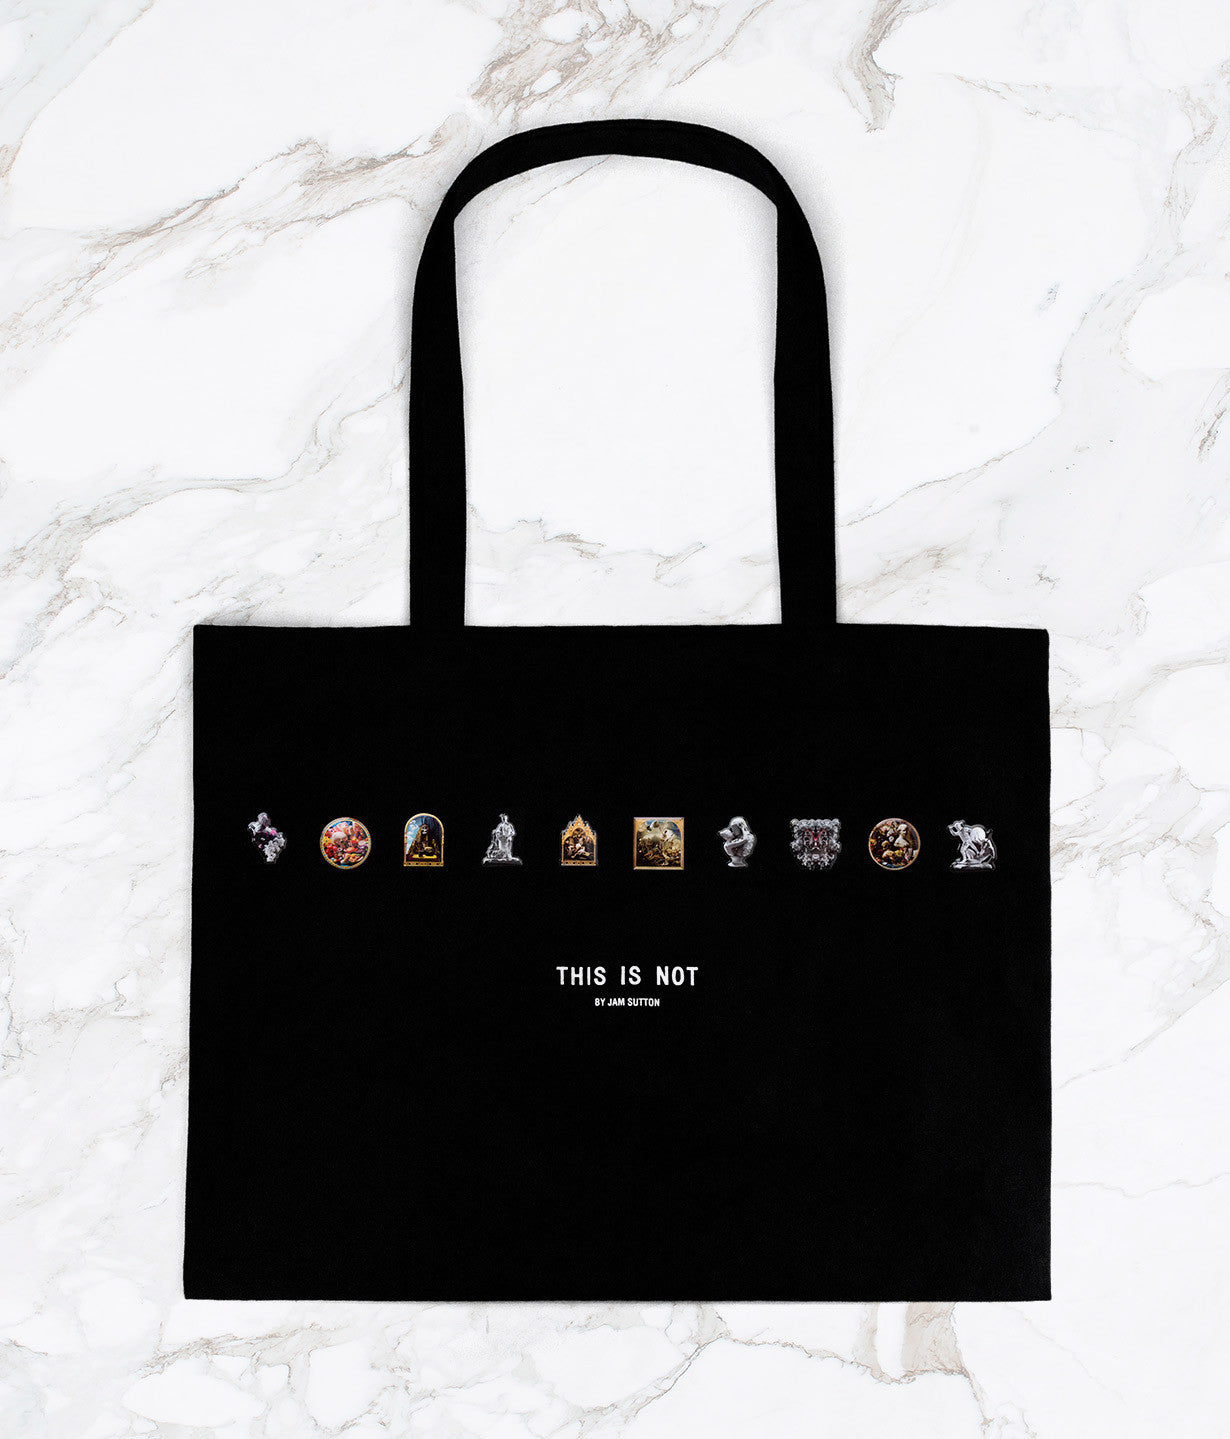 ARTWORK PINS + TOTE BAG